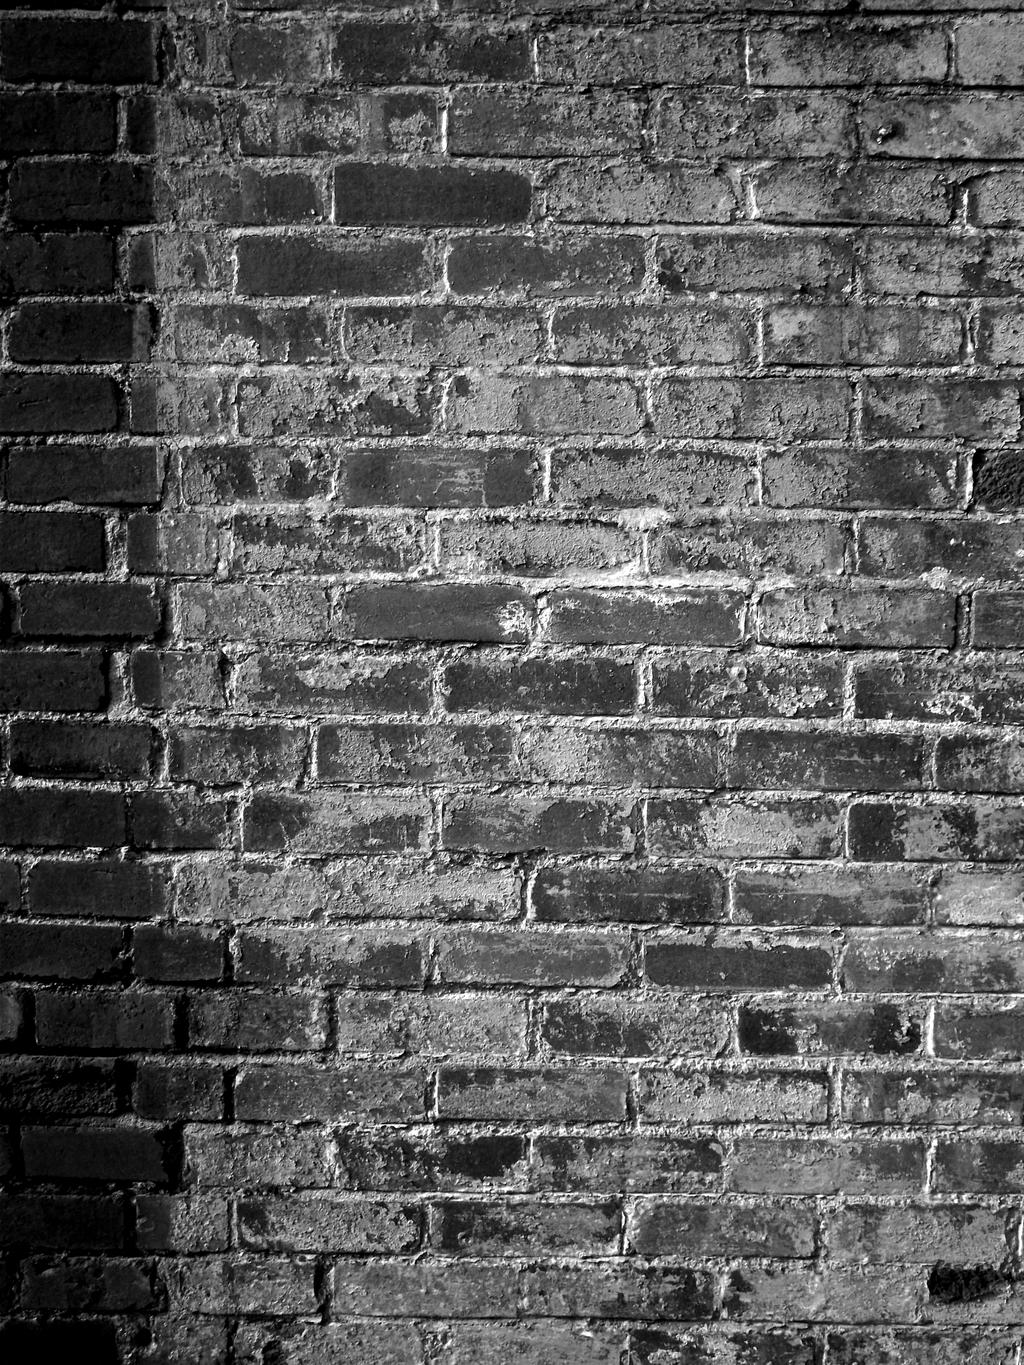 Wall Art In Black And White : Black and white wall by jonnyxbrainless on deviantart